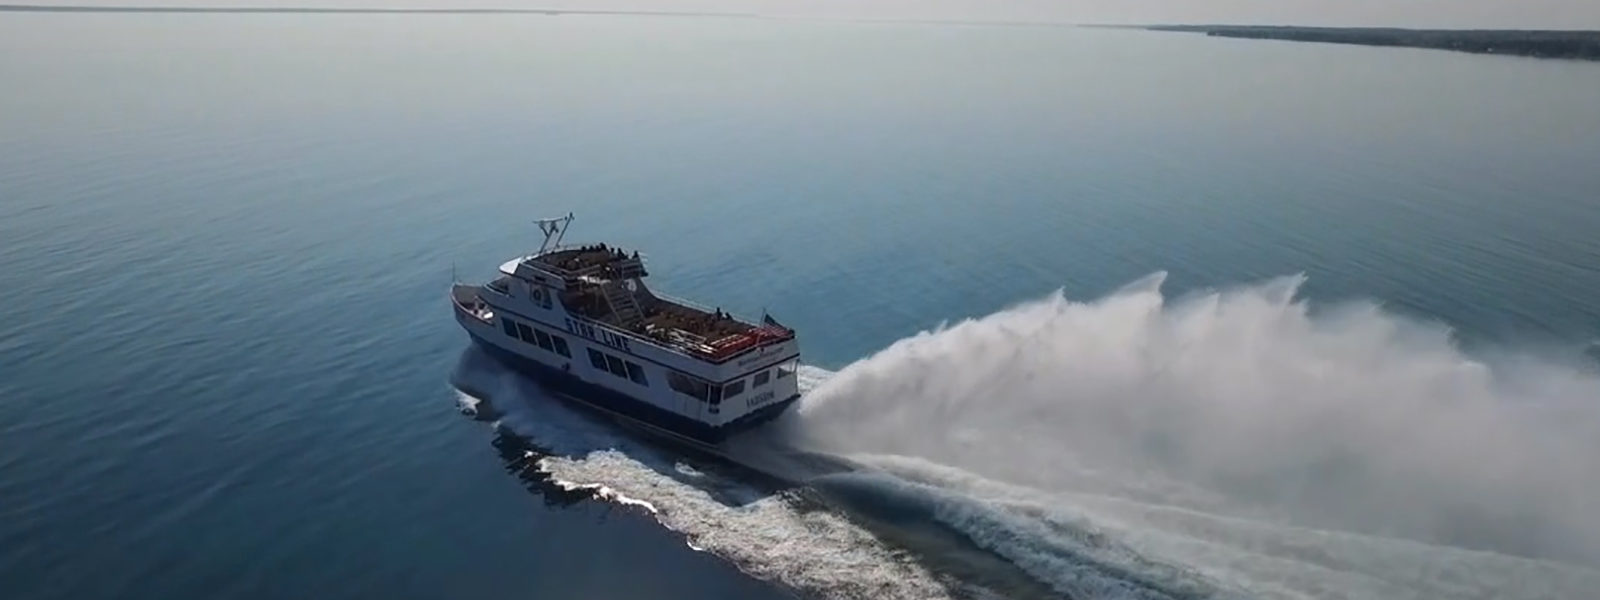 Photo of Star Line Mackinac Island Hydro-Jet Ferry boat Radisson on way to Mackinac Island